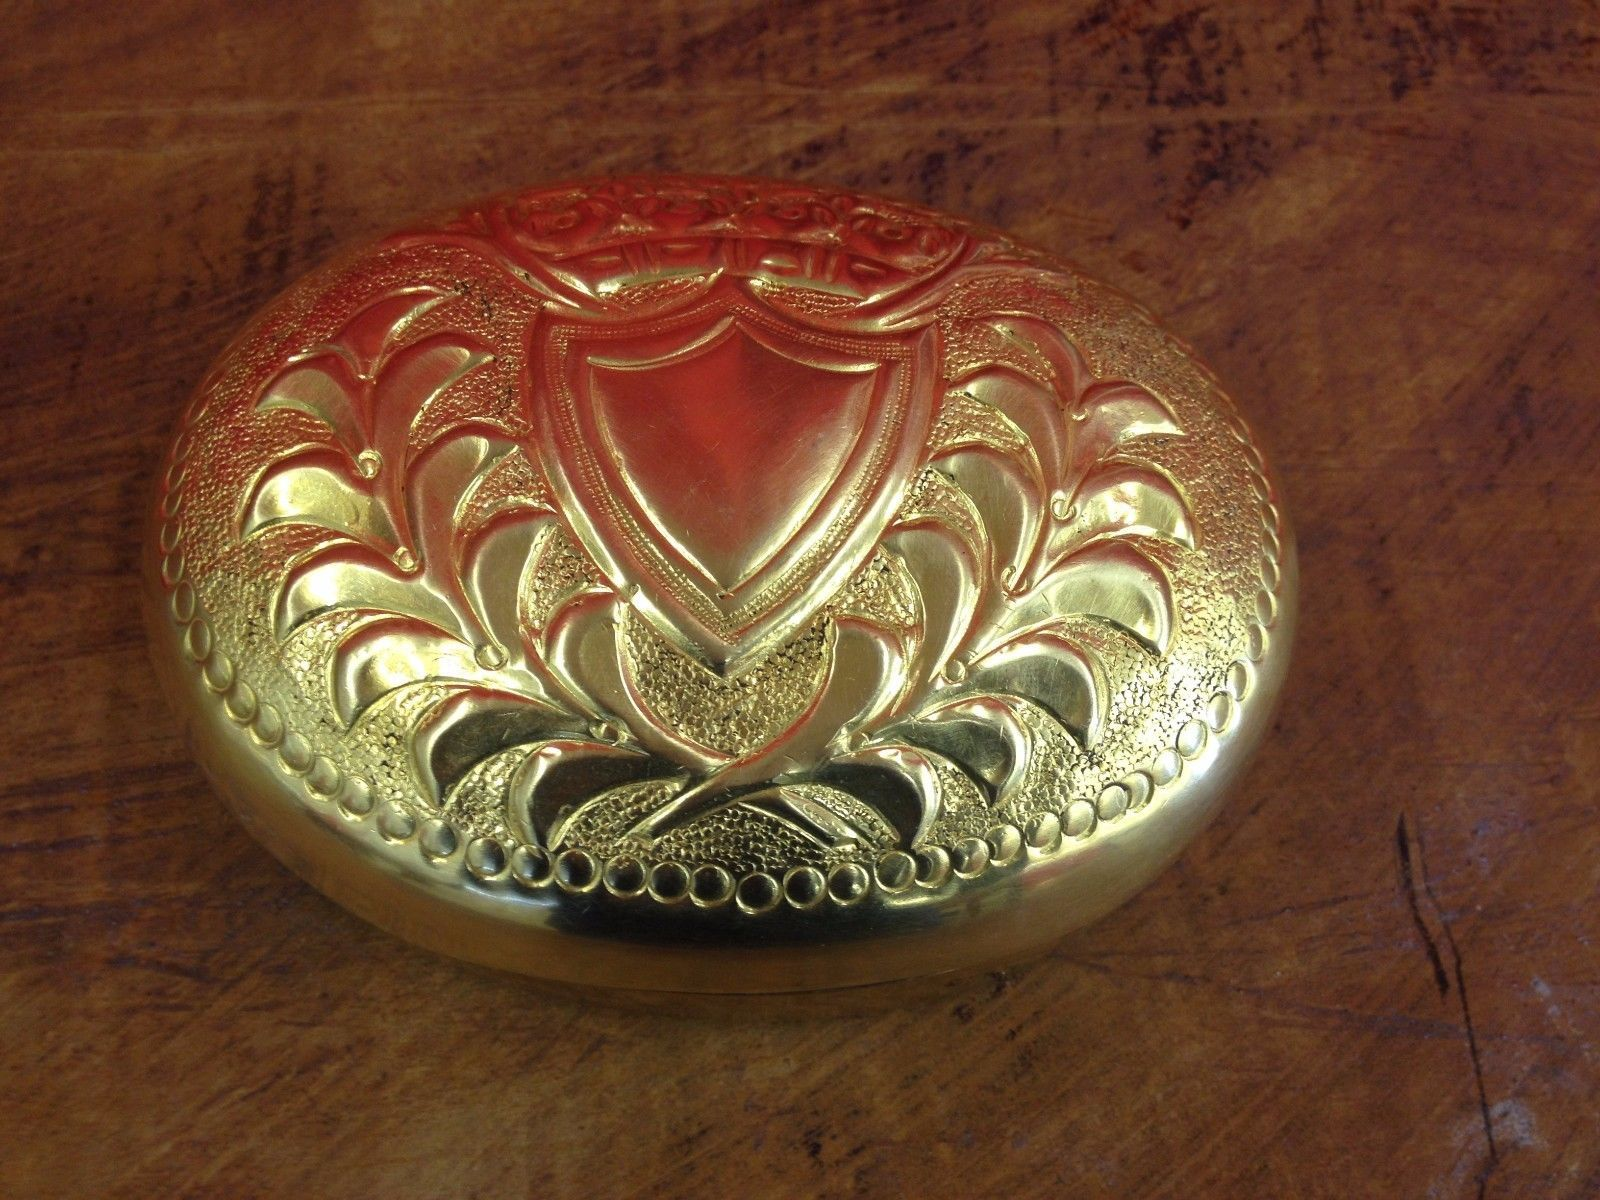 Vintage brass embossed soap holder box bathroom decor collectible